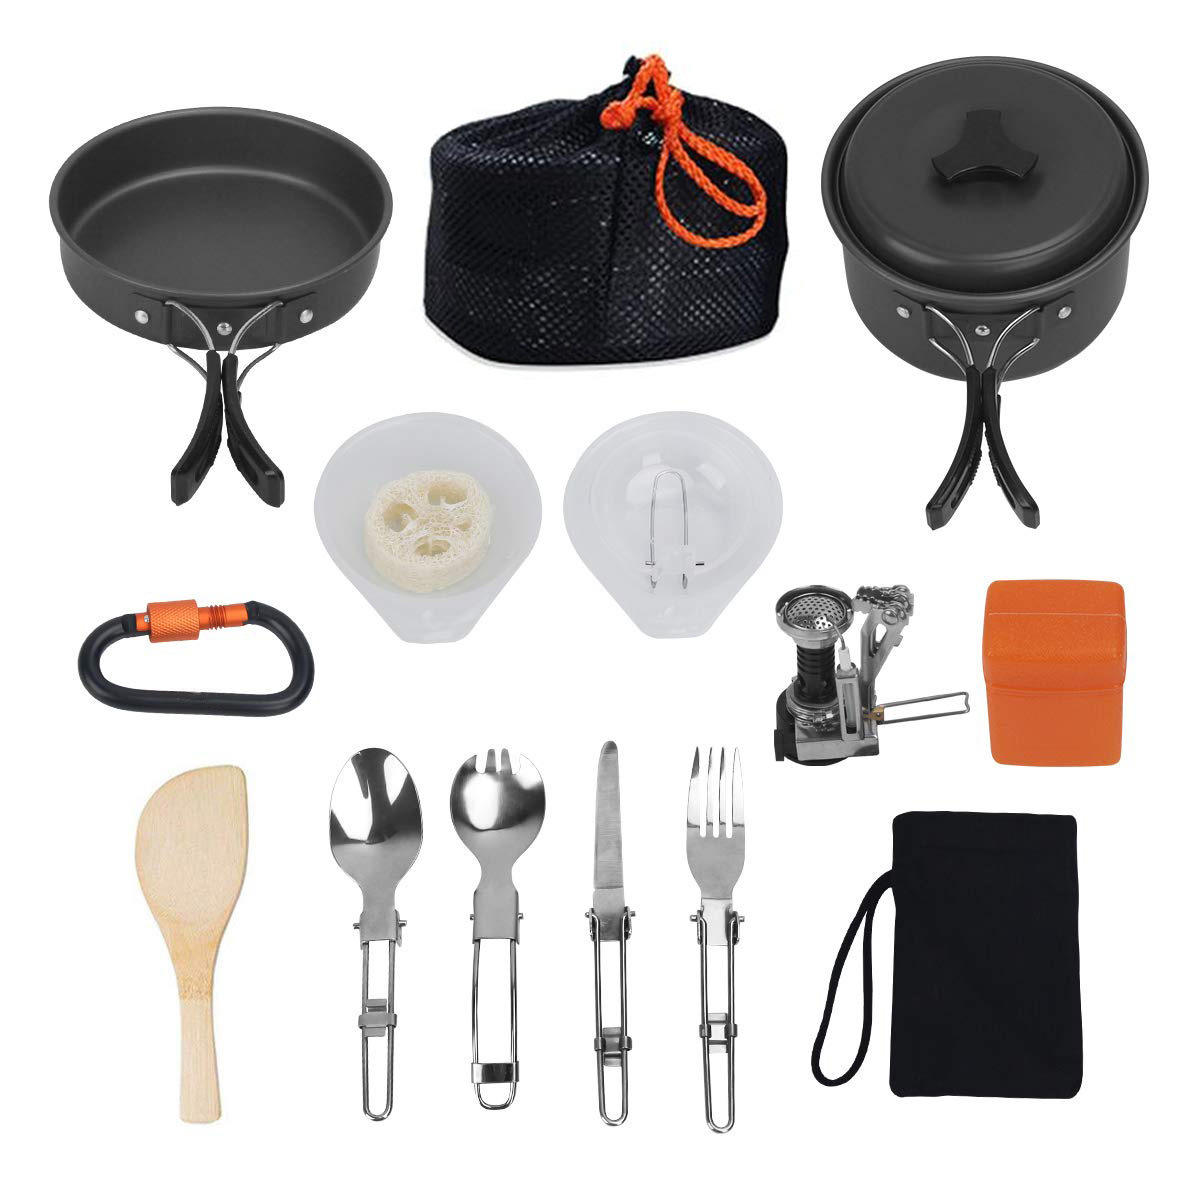 16Pcs Hiking Backpacking Non-Stick Portable Outdoor Camping Cookware Set / Mess Kit / Cookset / Camp Kitchen